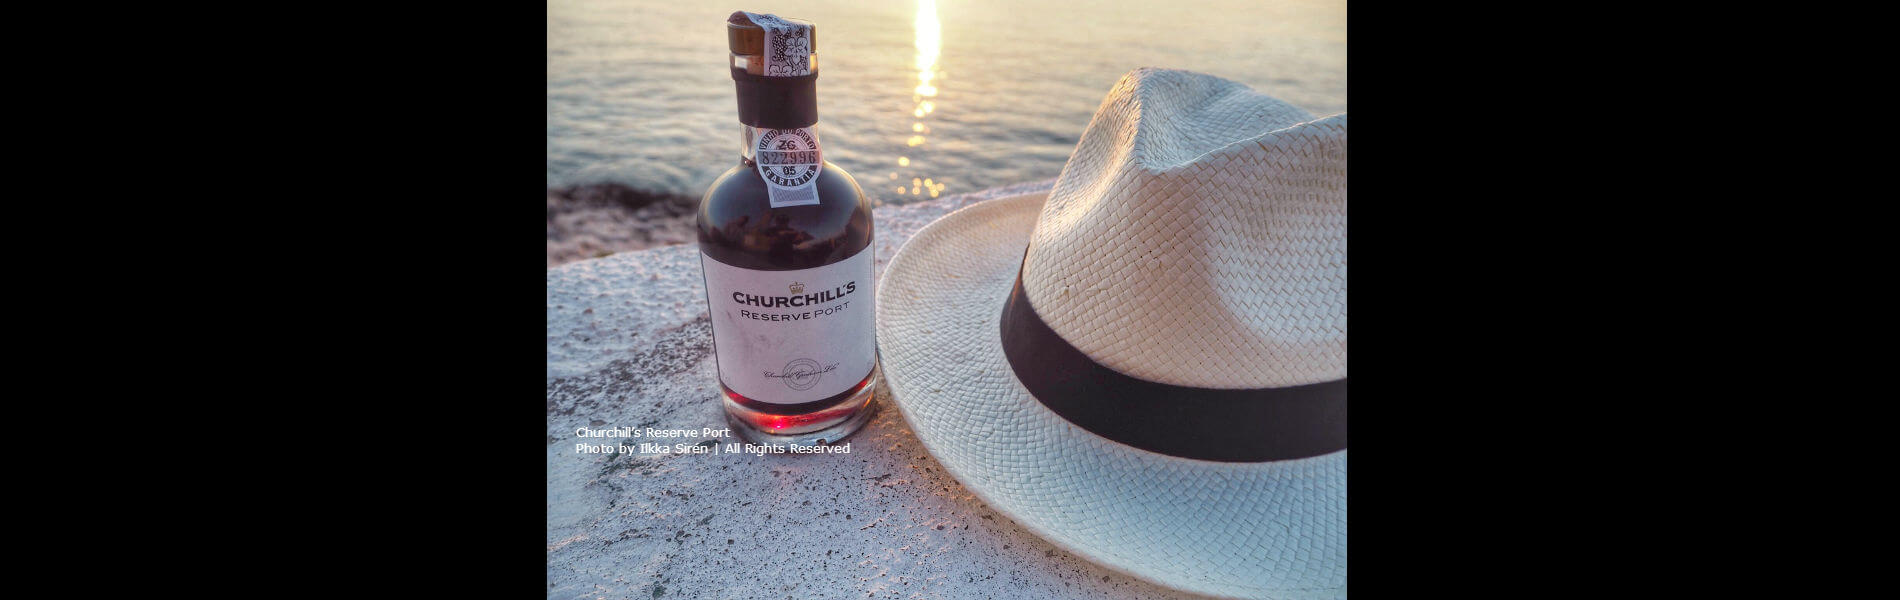 Blend-All-About-Wine-Lighthouse-Keepers-Churchill's-Reserve-Port-Slider